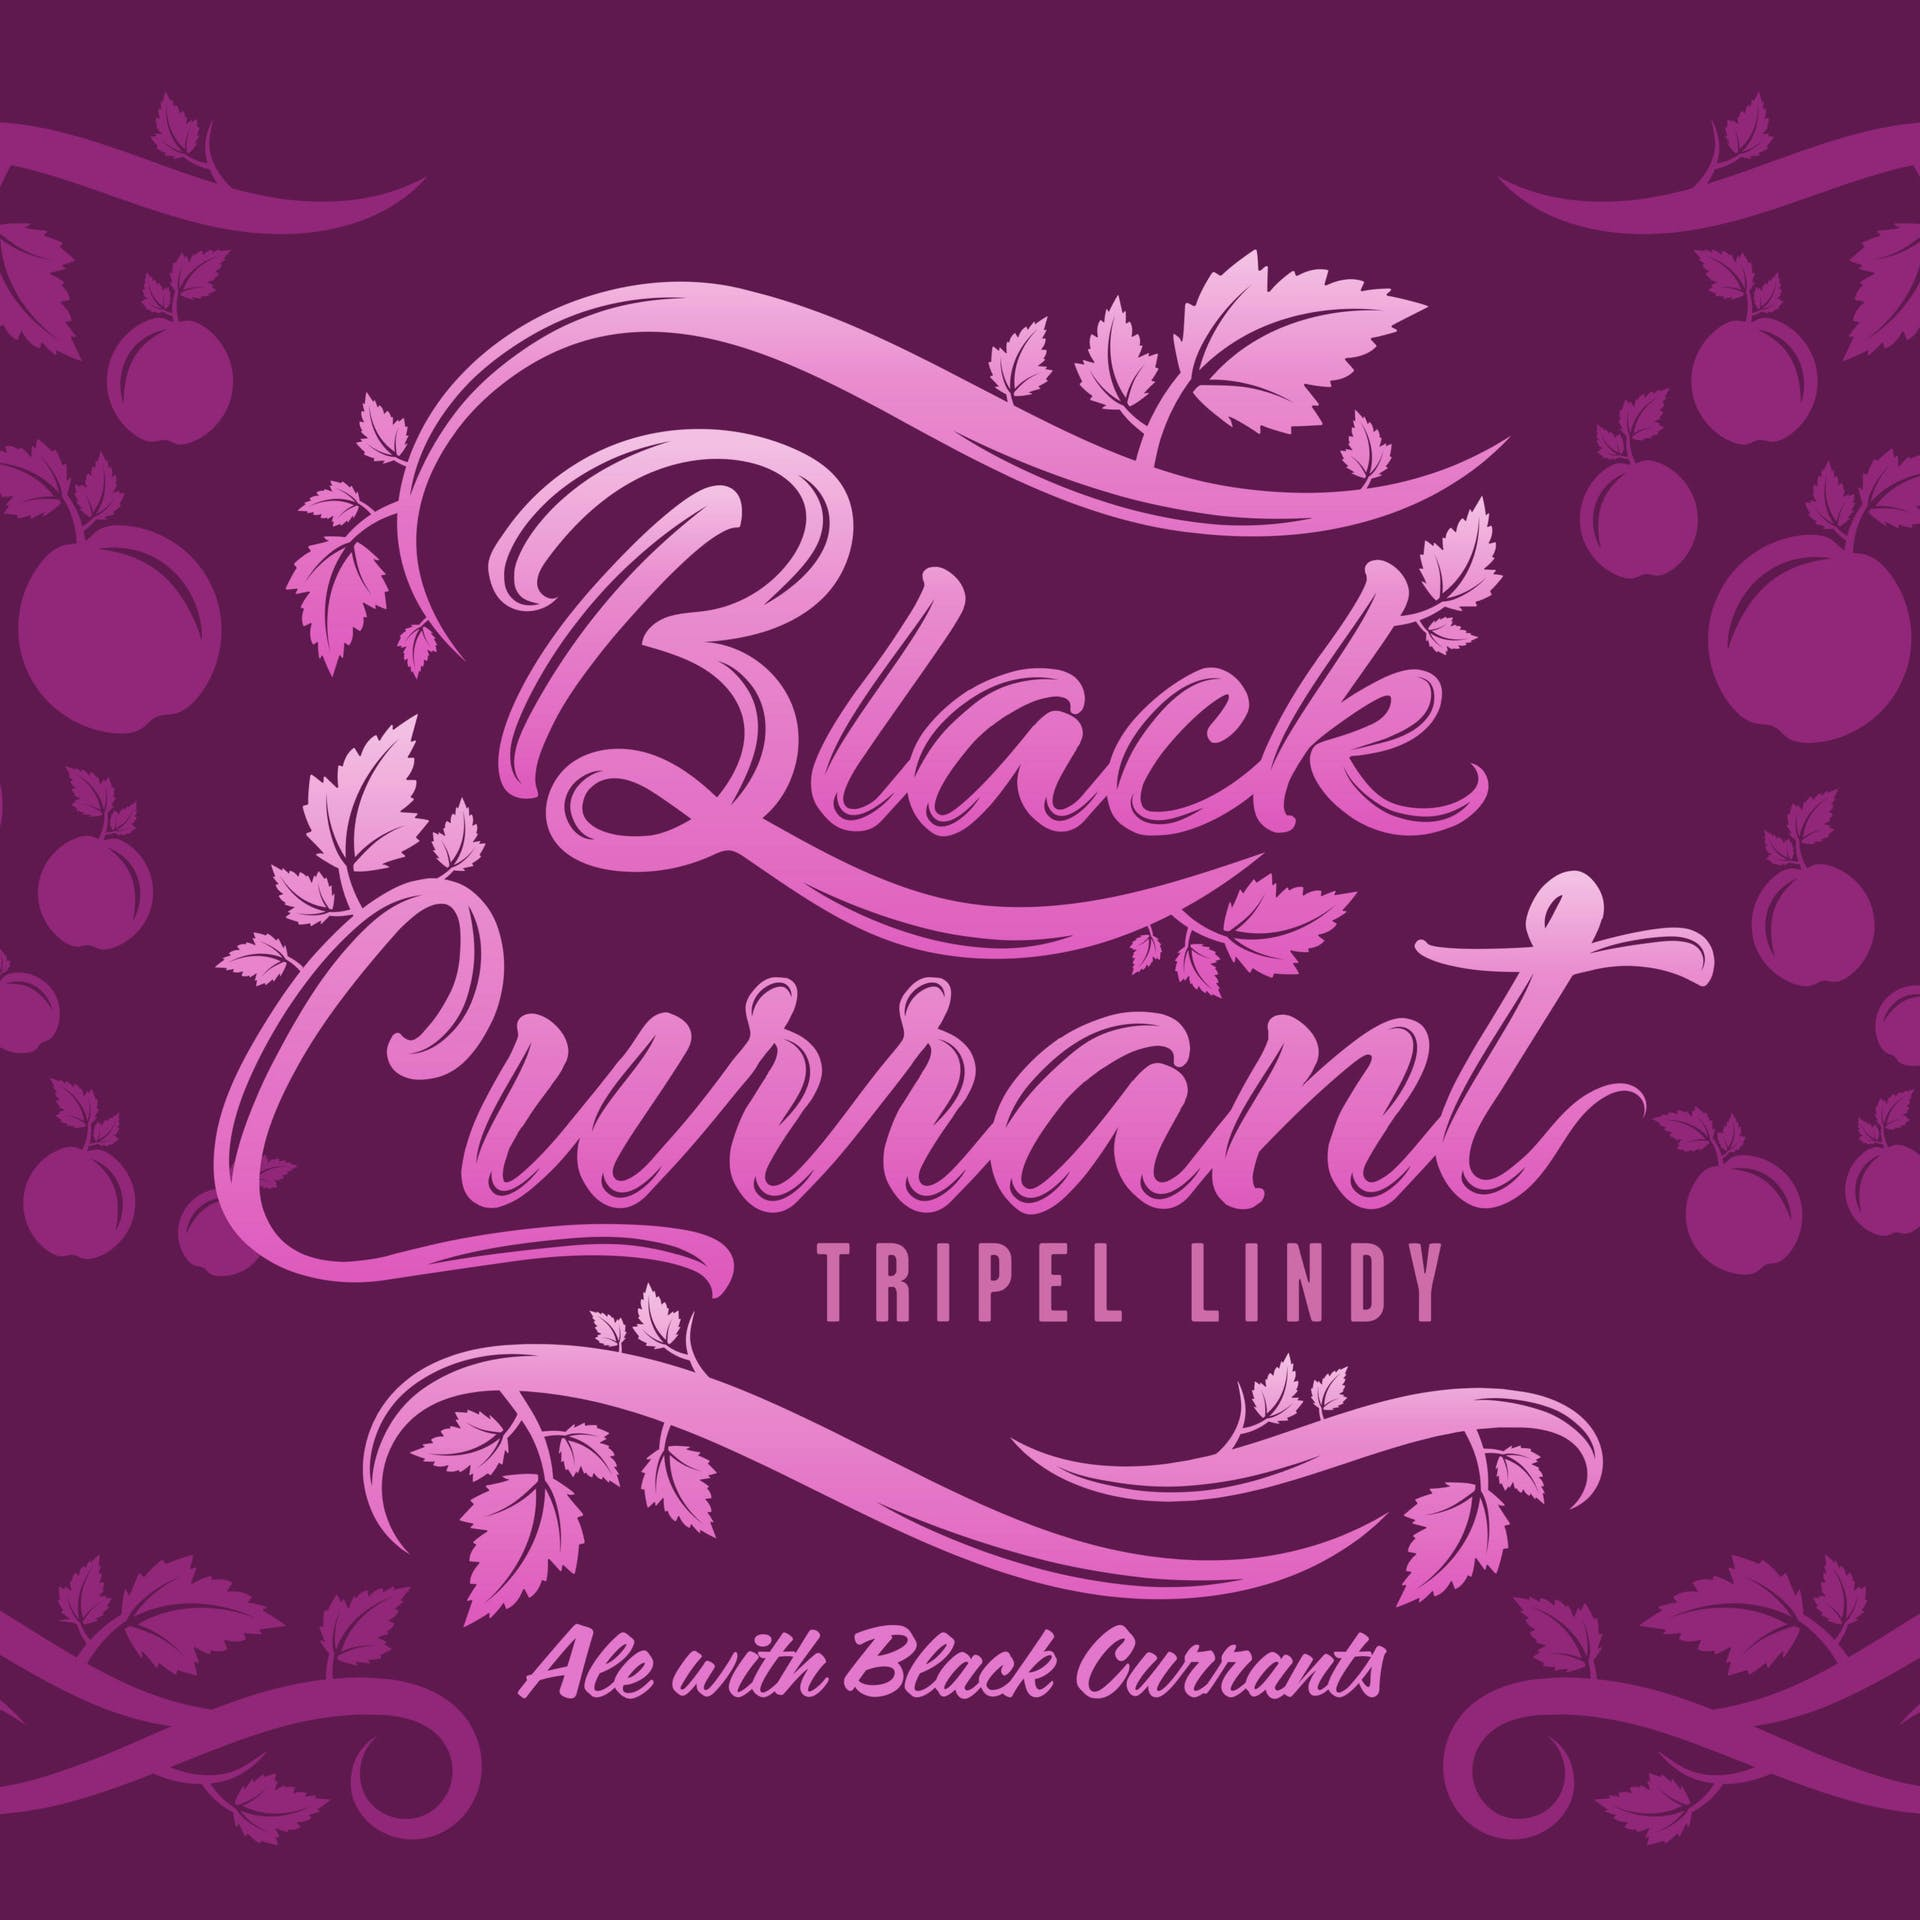 blackcurrant1200